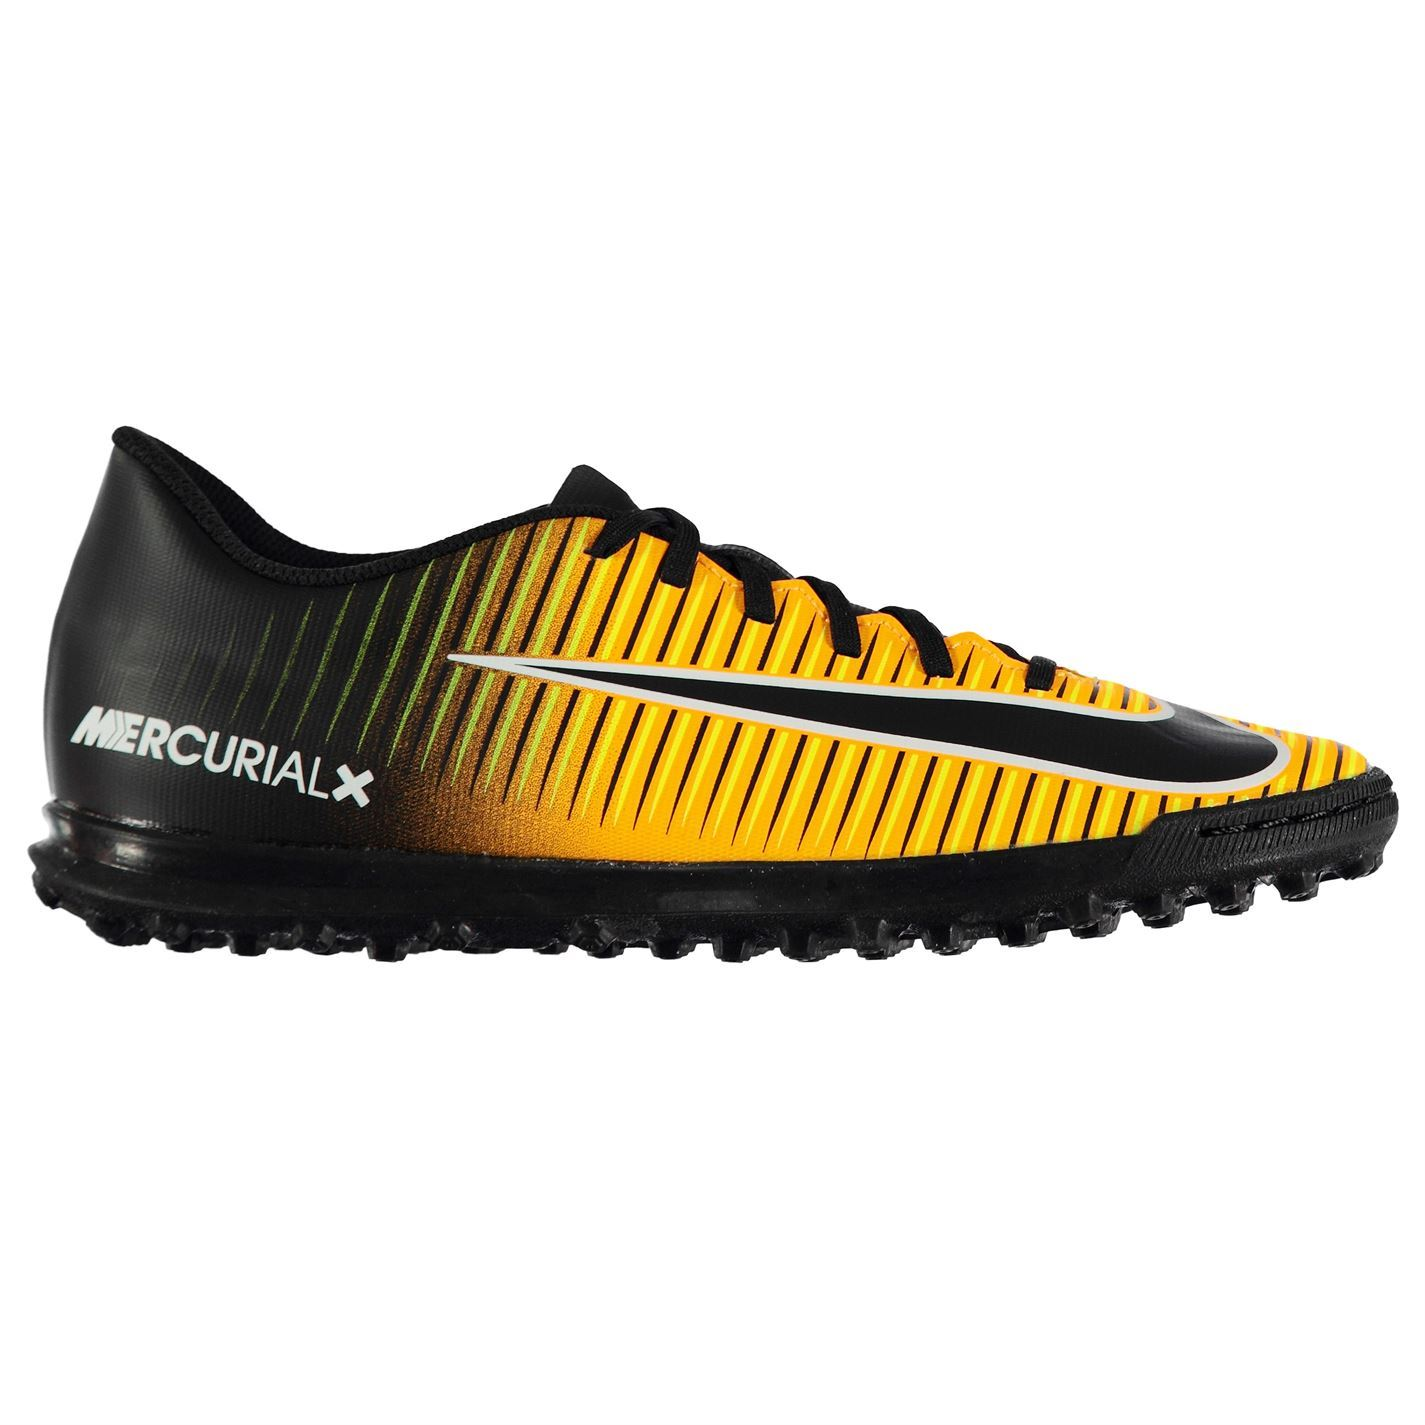 5304cc67b120 ... Nike Mercurial Vortex Astro Turf Football Trainers Mens Soccer Shoes  Sneakers ...